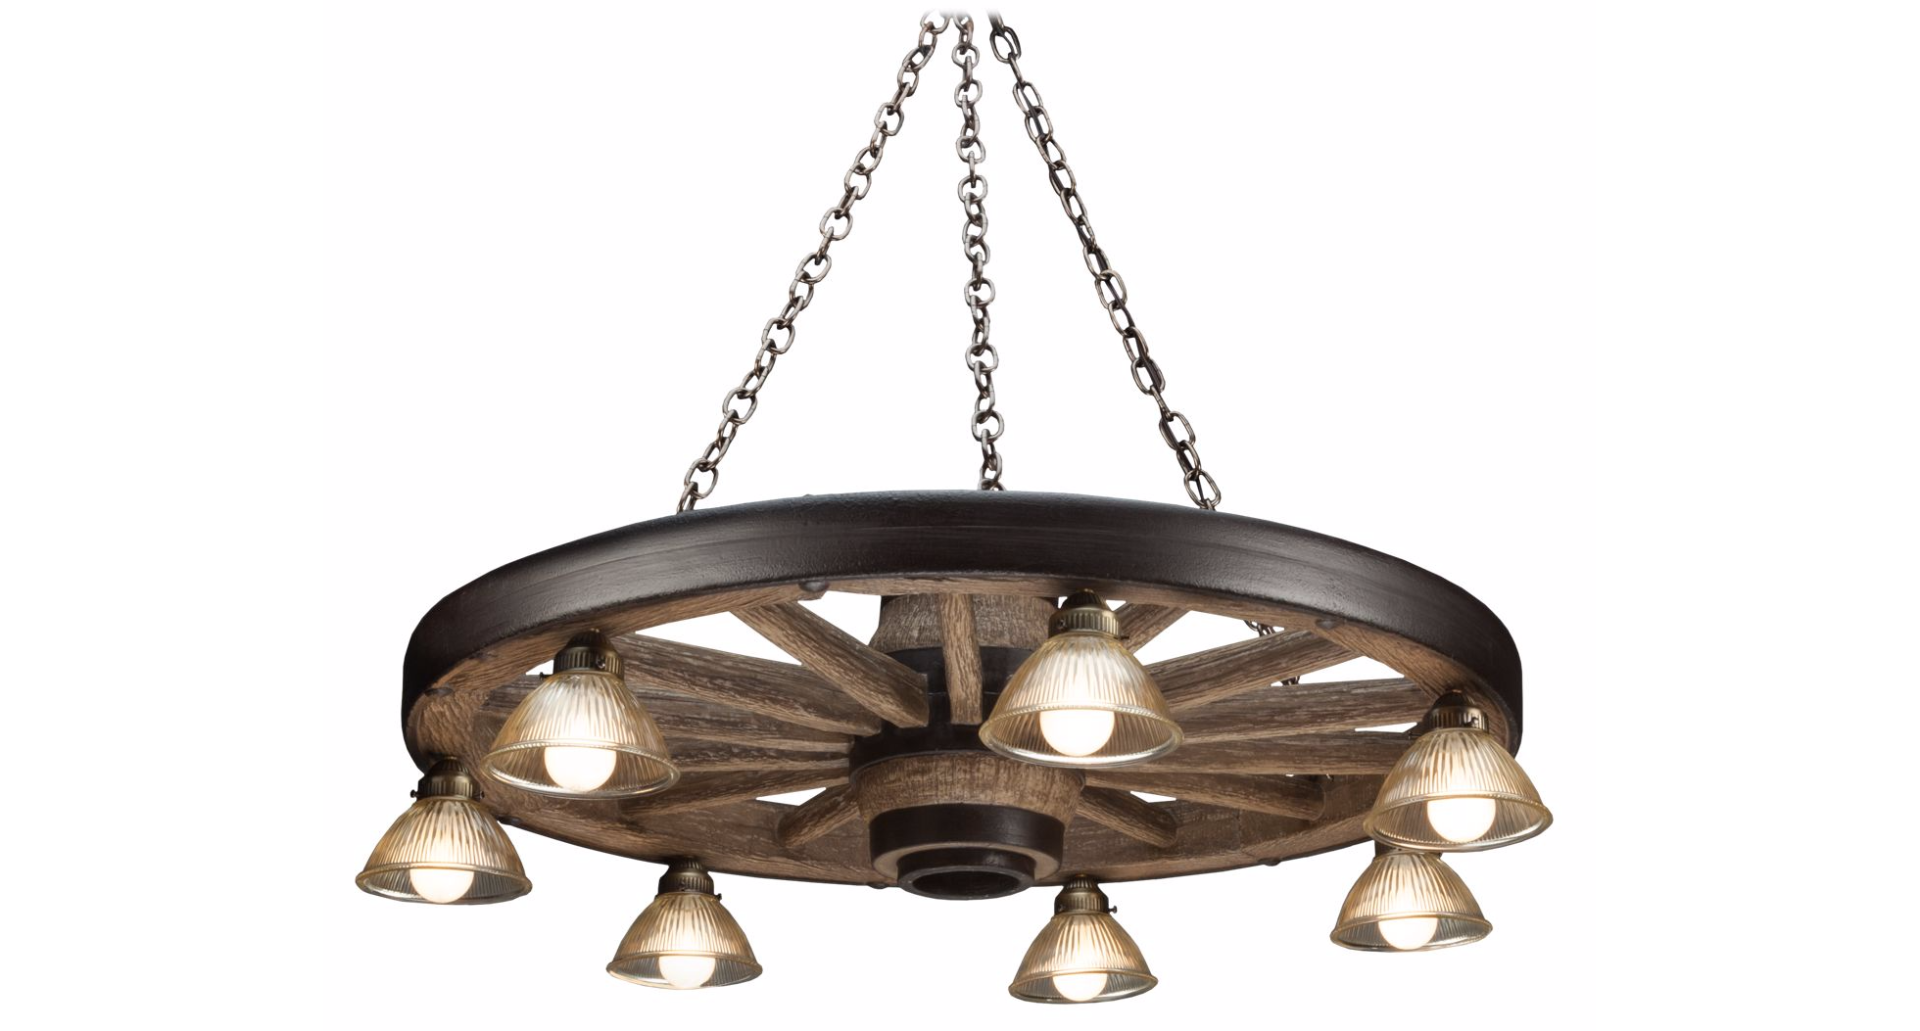 Chandelier png. Discontinued discounted large wagon